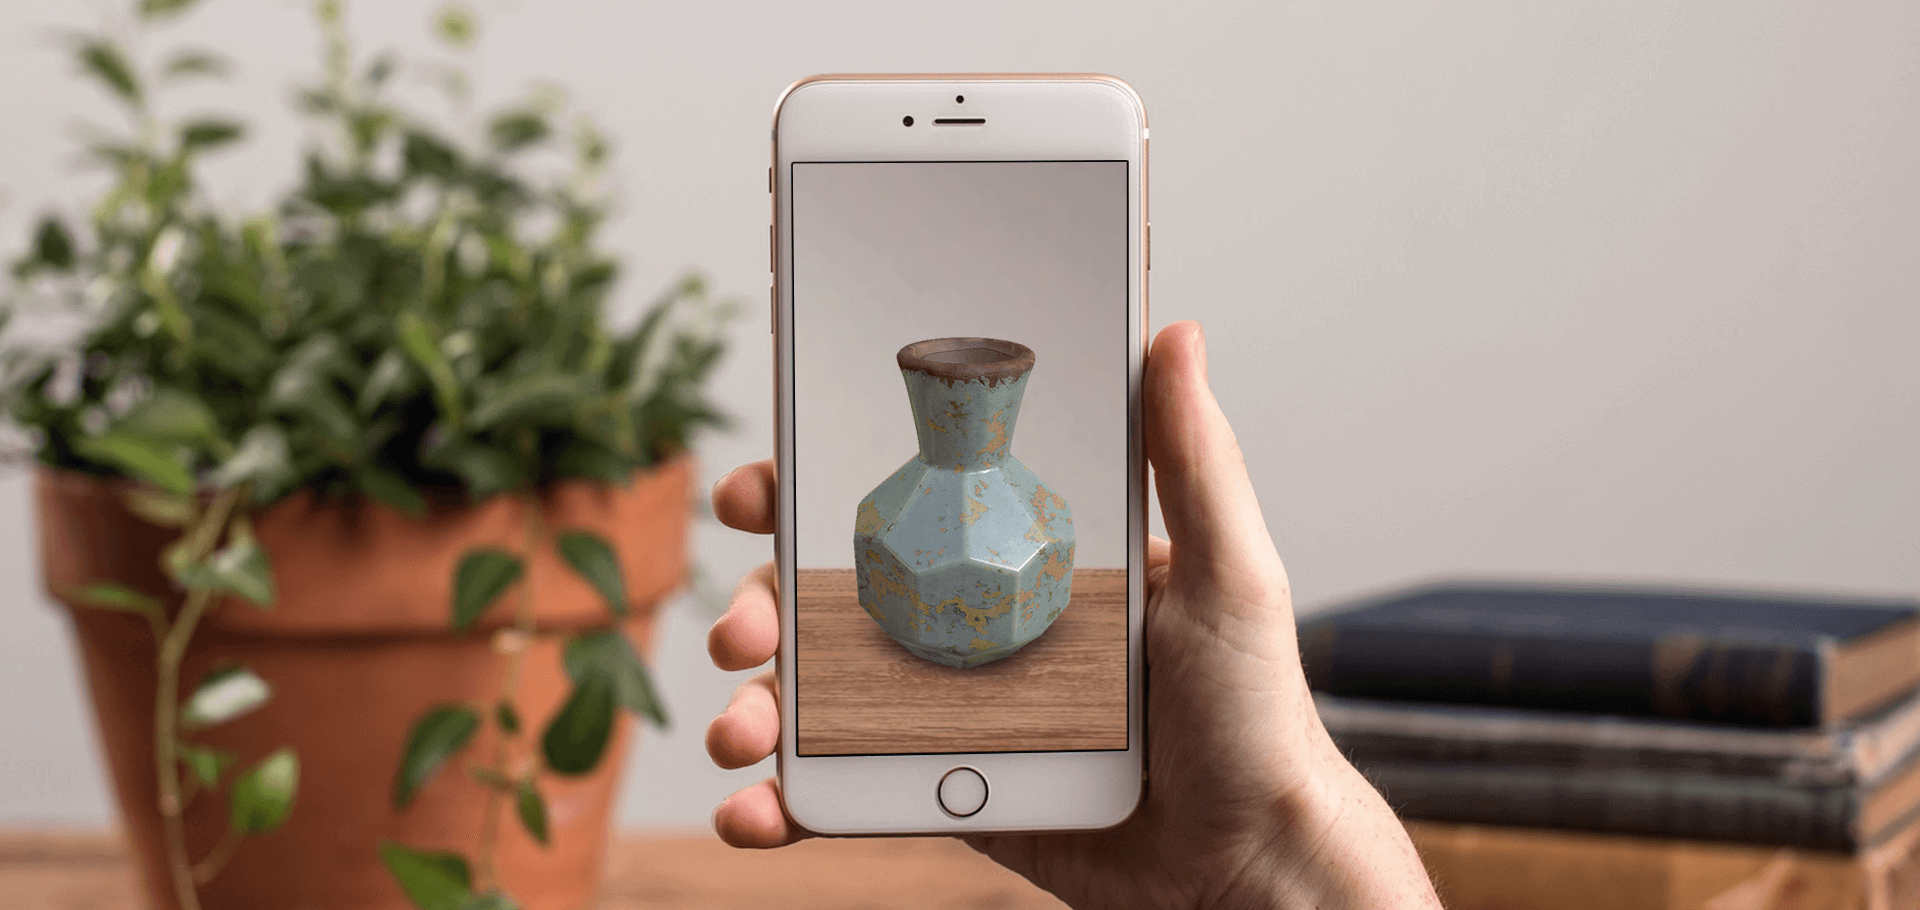 AR E-COMMERCE SOLUTIONS: WHY SHOPIFY IS GETTING AUGMENTED